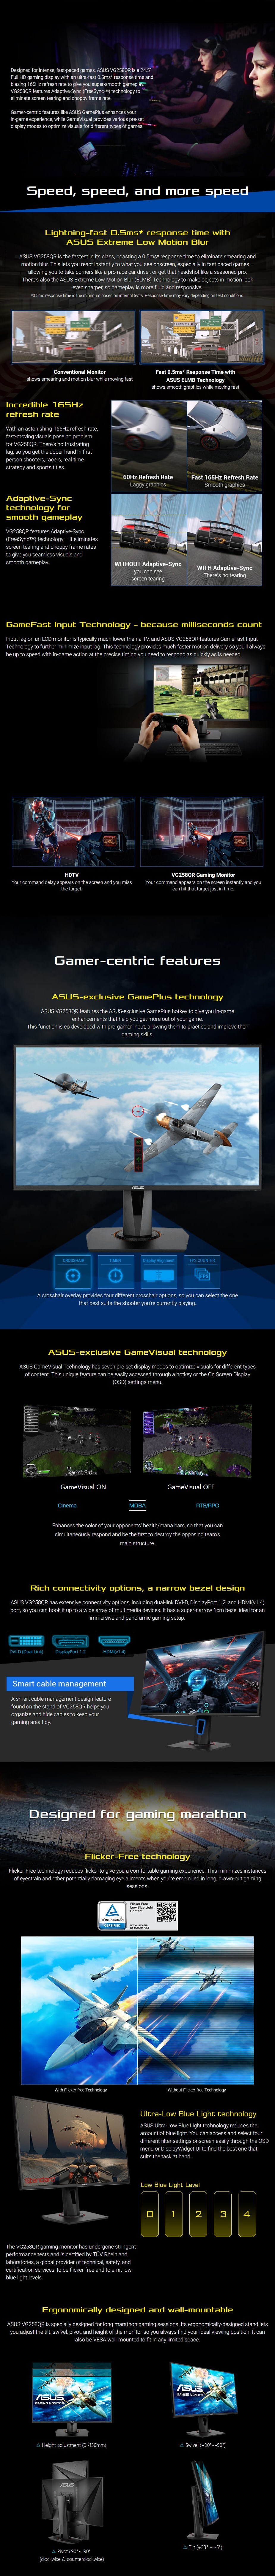 Image result for ASUS VG258Q features the ASUS-exclusive GamePlus hotkey to give you in-game enhancements that help you get more out of your game.